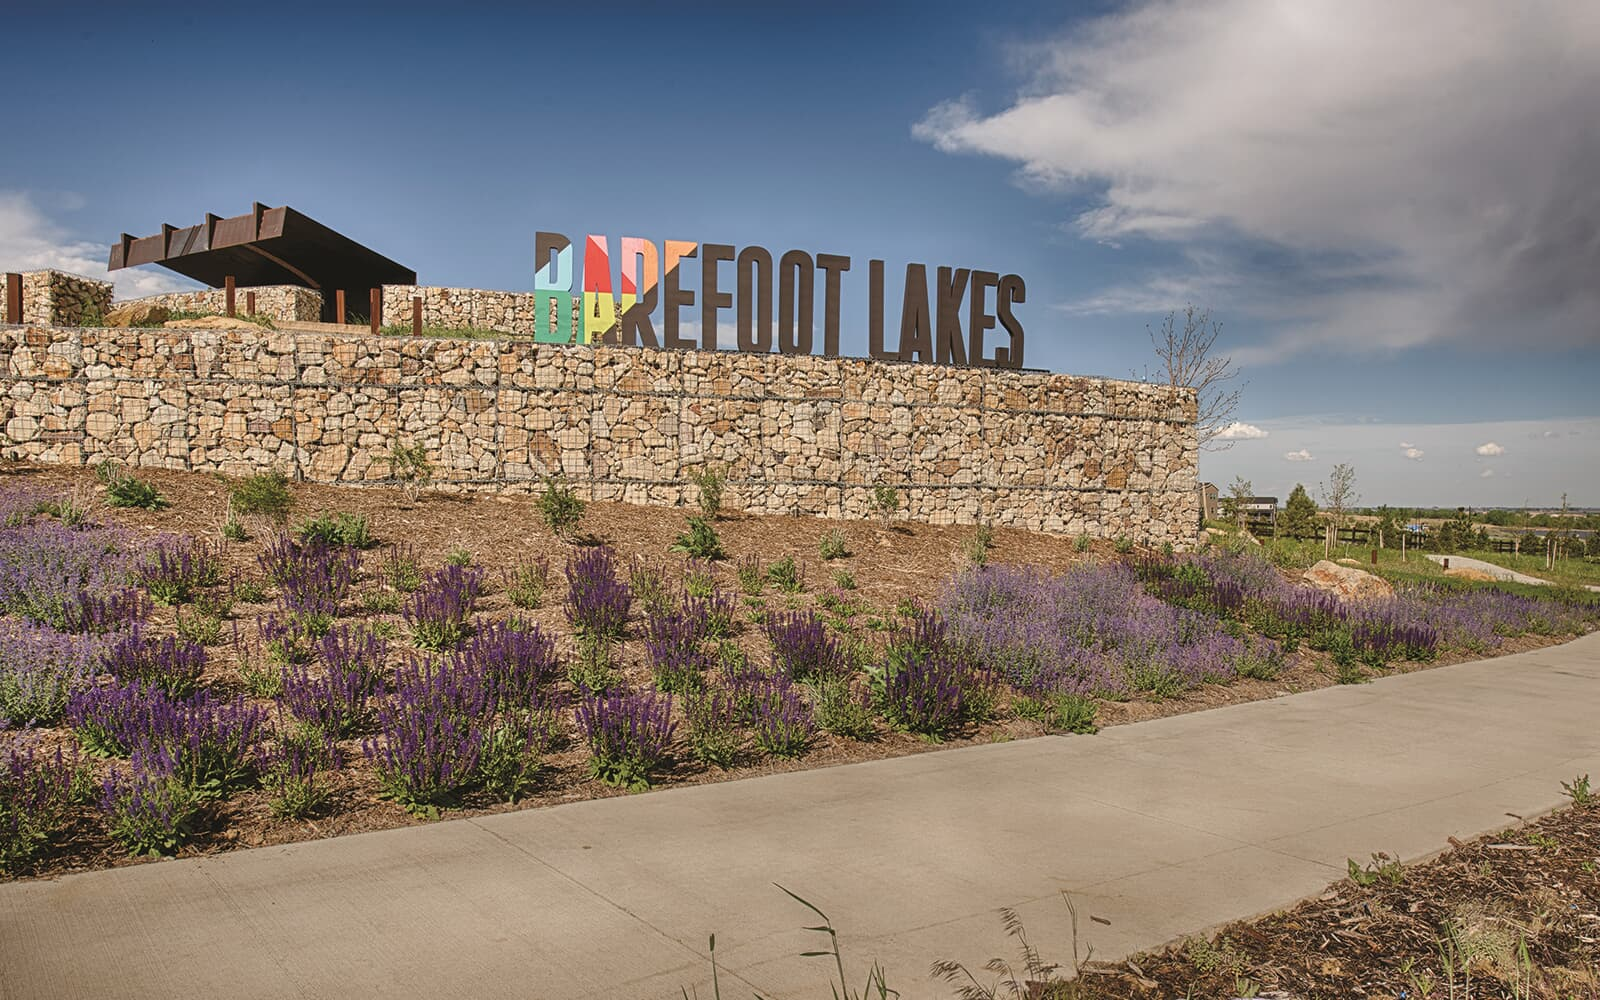 Lifestyle-Photo-Entry-Signage-Sunset-Pavillion-Barefoot-Lakes-Denver-Colorado